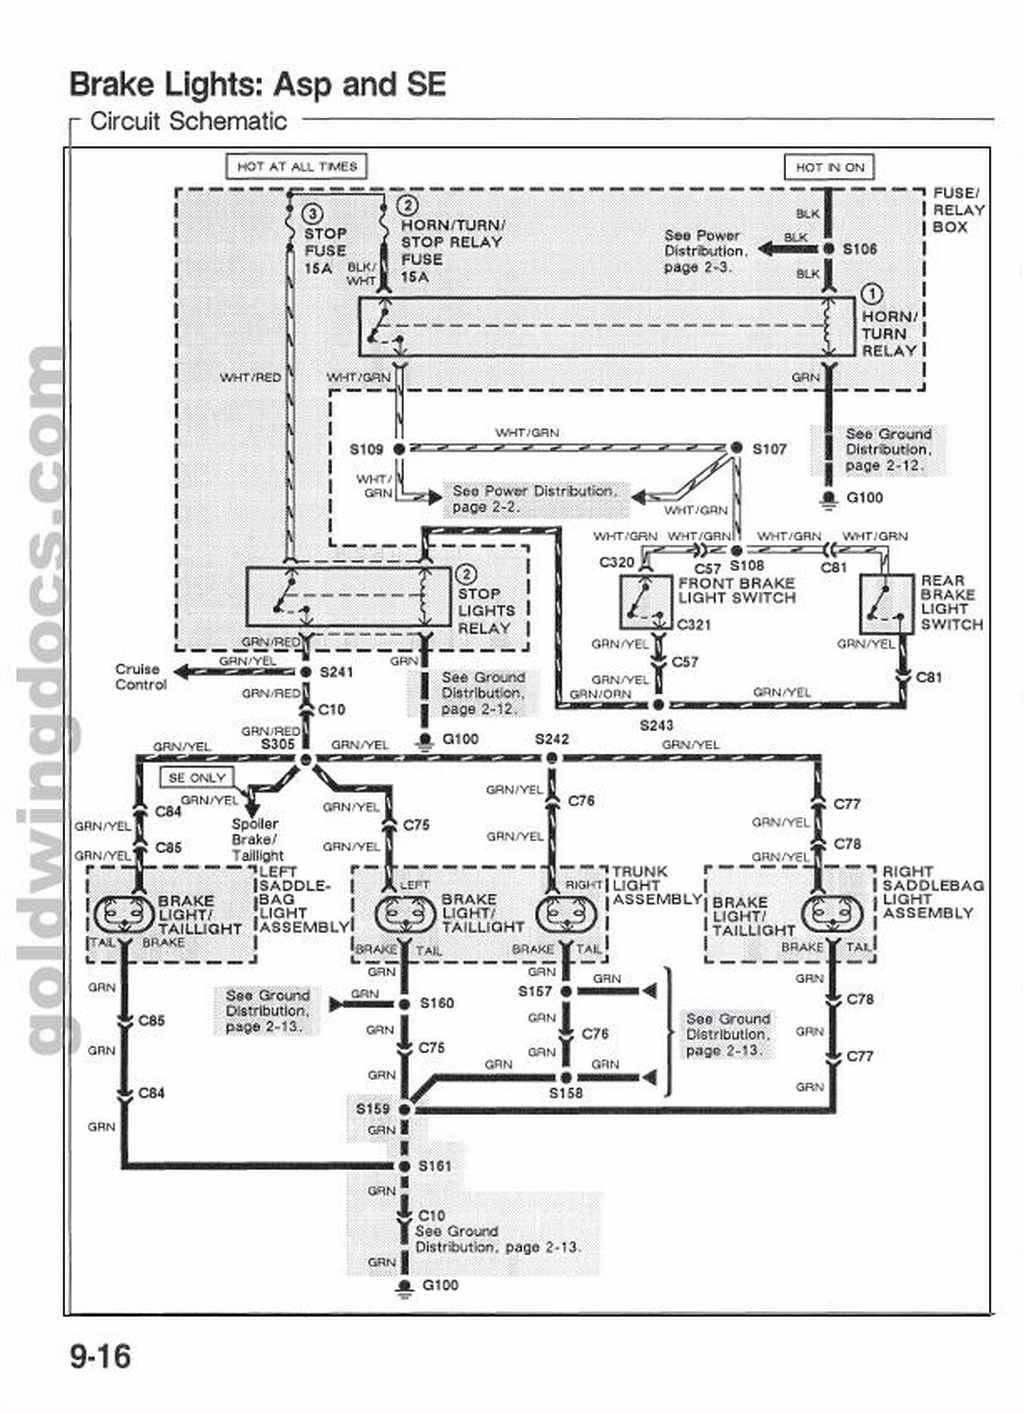 2012 Goldwing Wiring Diagram FULL HD Version Wiring Diagram - MAYU-DIAGRAM .MILLE-ANNONCES.FRDiagram Database